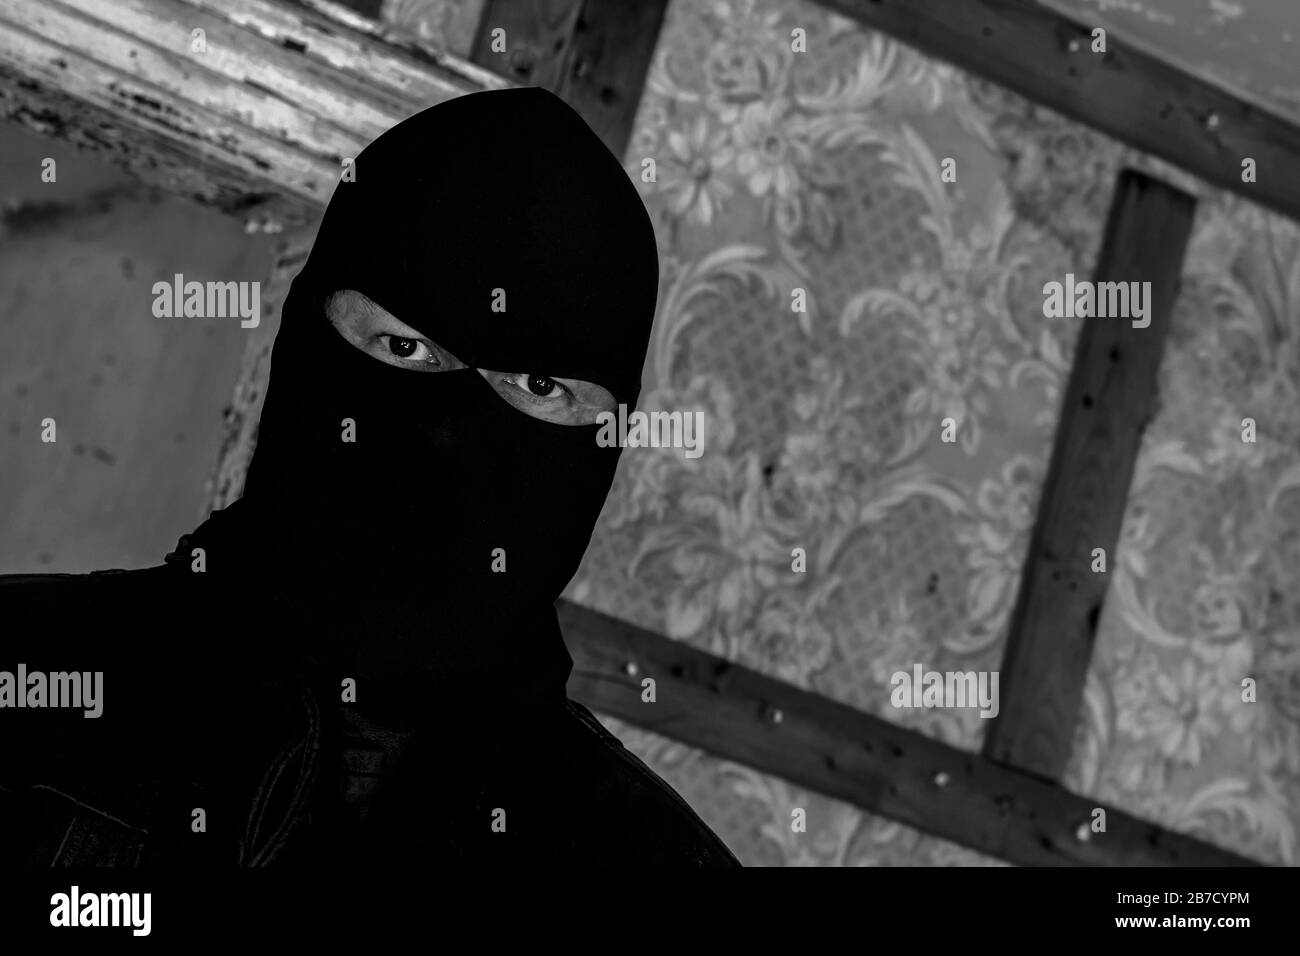 A Man Wearing A Mask Hood In An Abandoned Building He Is Staring At The Viewer Closeup View At An Angle Dark Black And White Image Stock Photo Alamy